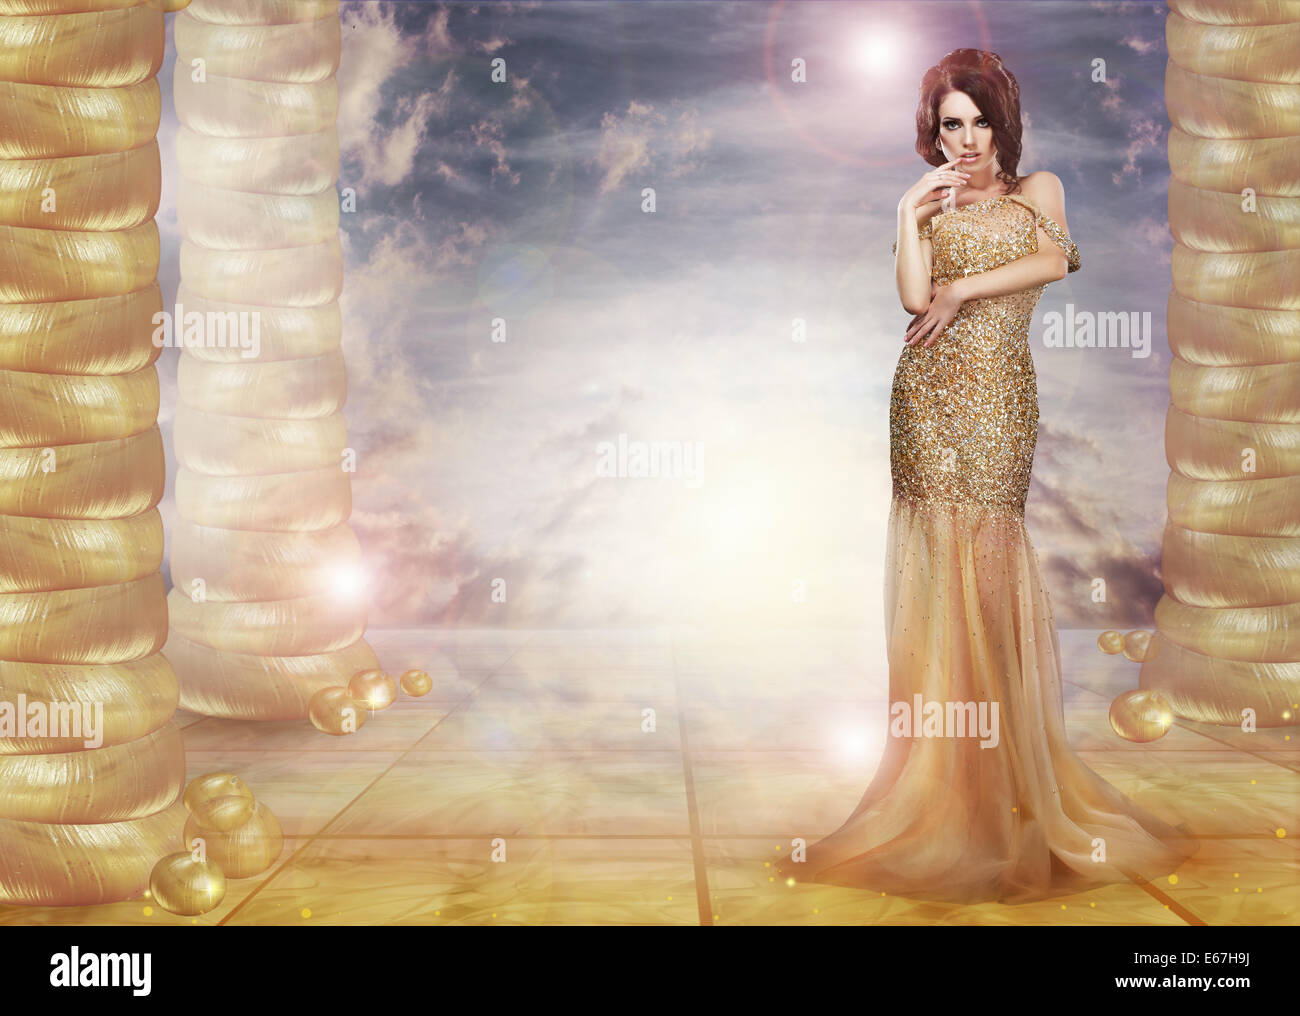 Fantasy. Glam. Enticing Lady in Stylish Dress over Abstract Background - Stock Image